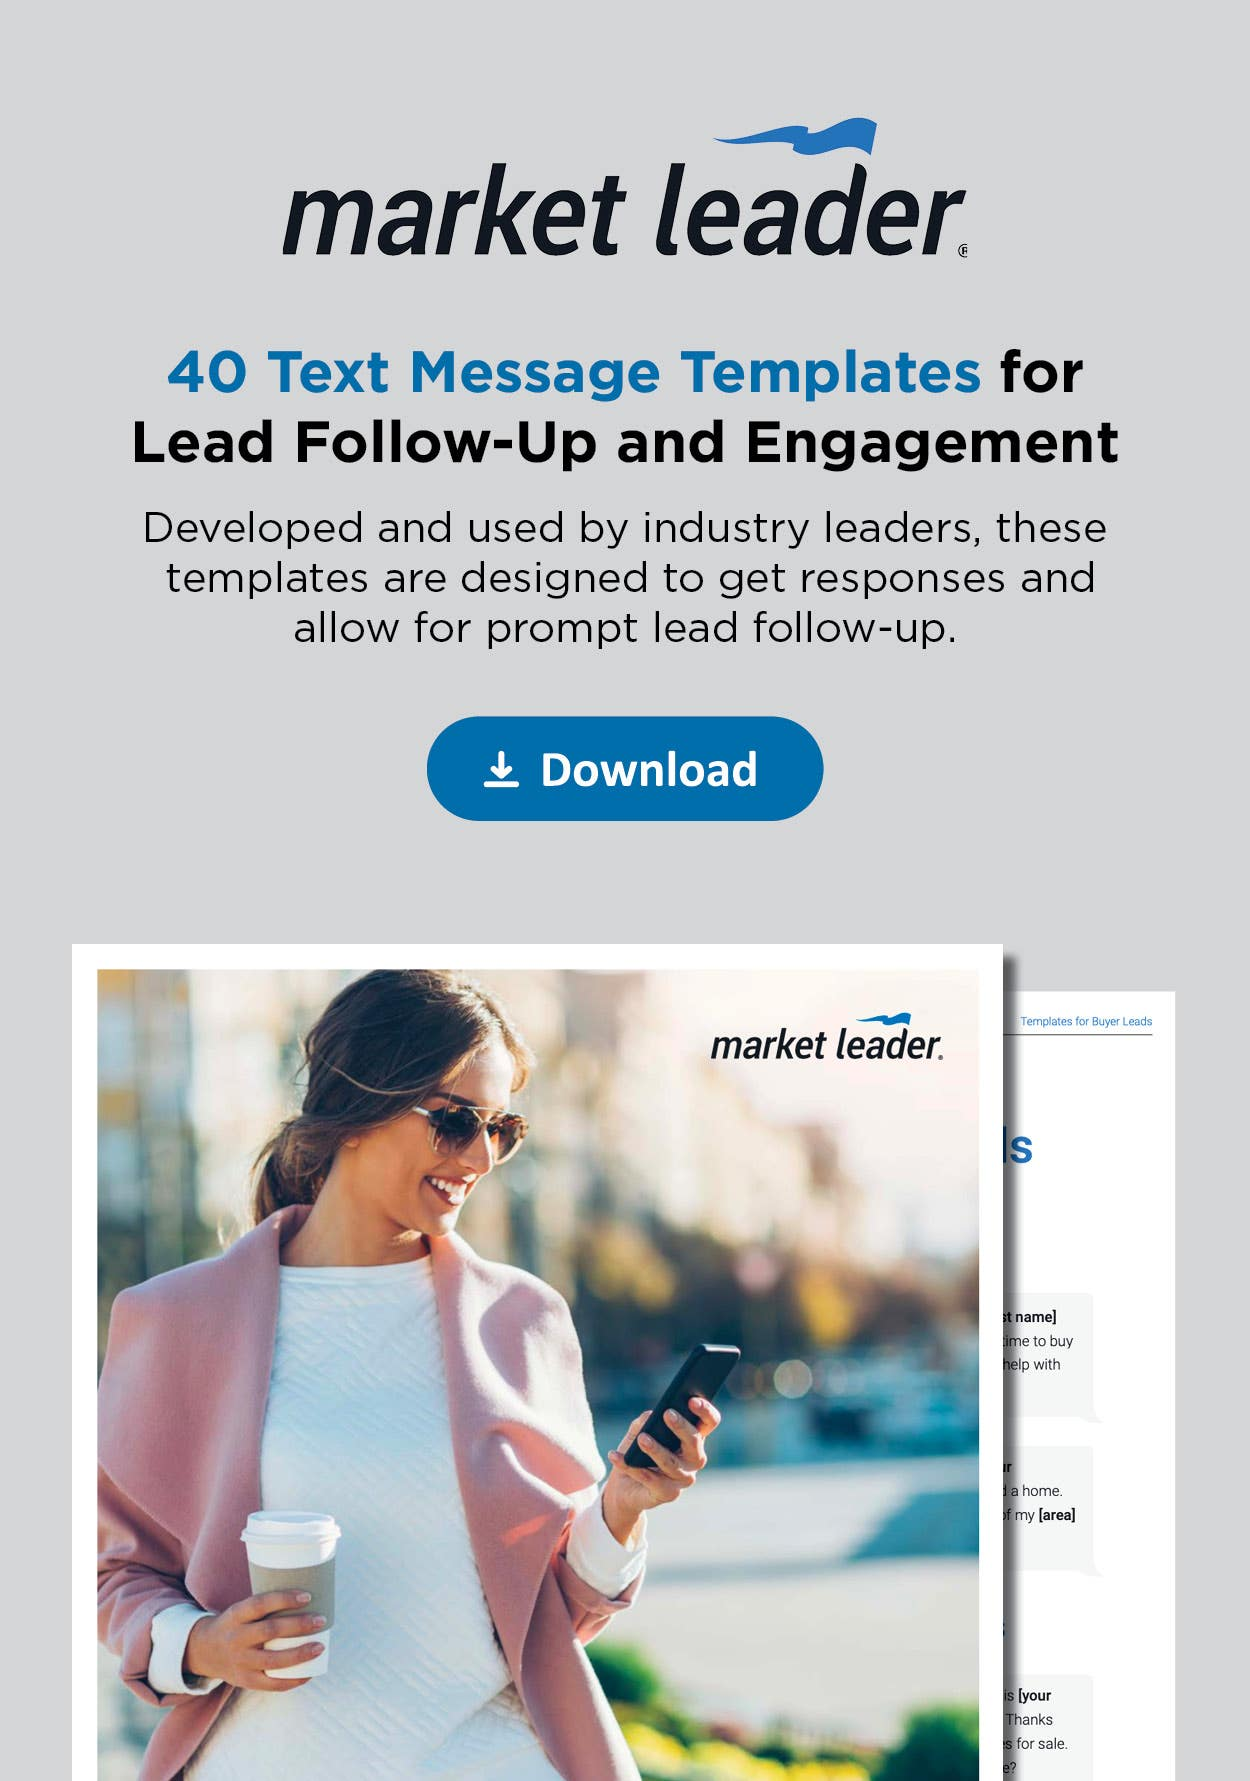 40 text message templates for lead follow-up and engagement